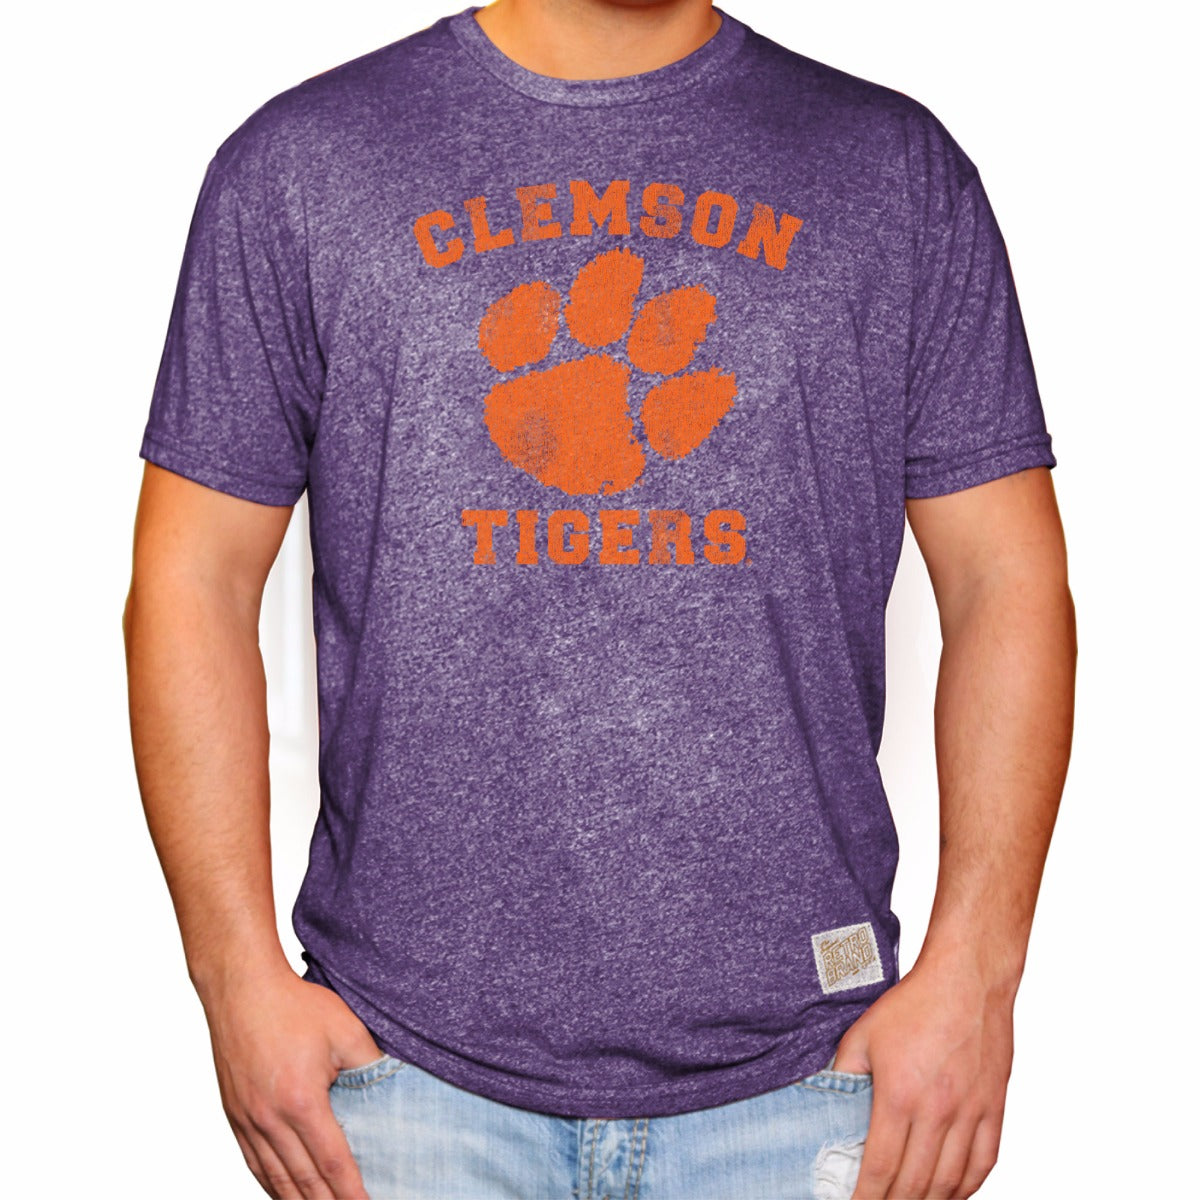 Clemson Tigers Men's Short Sleeve Mock Twist Tee